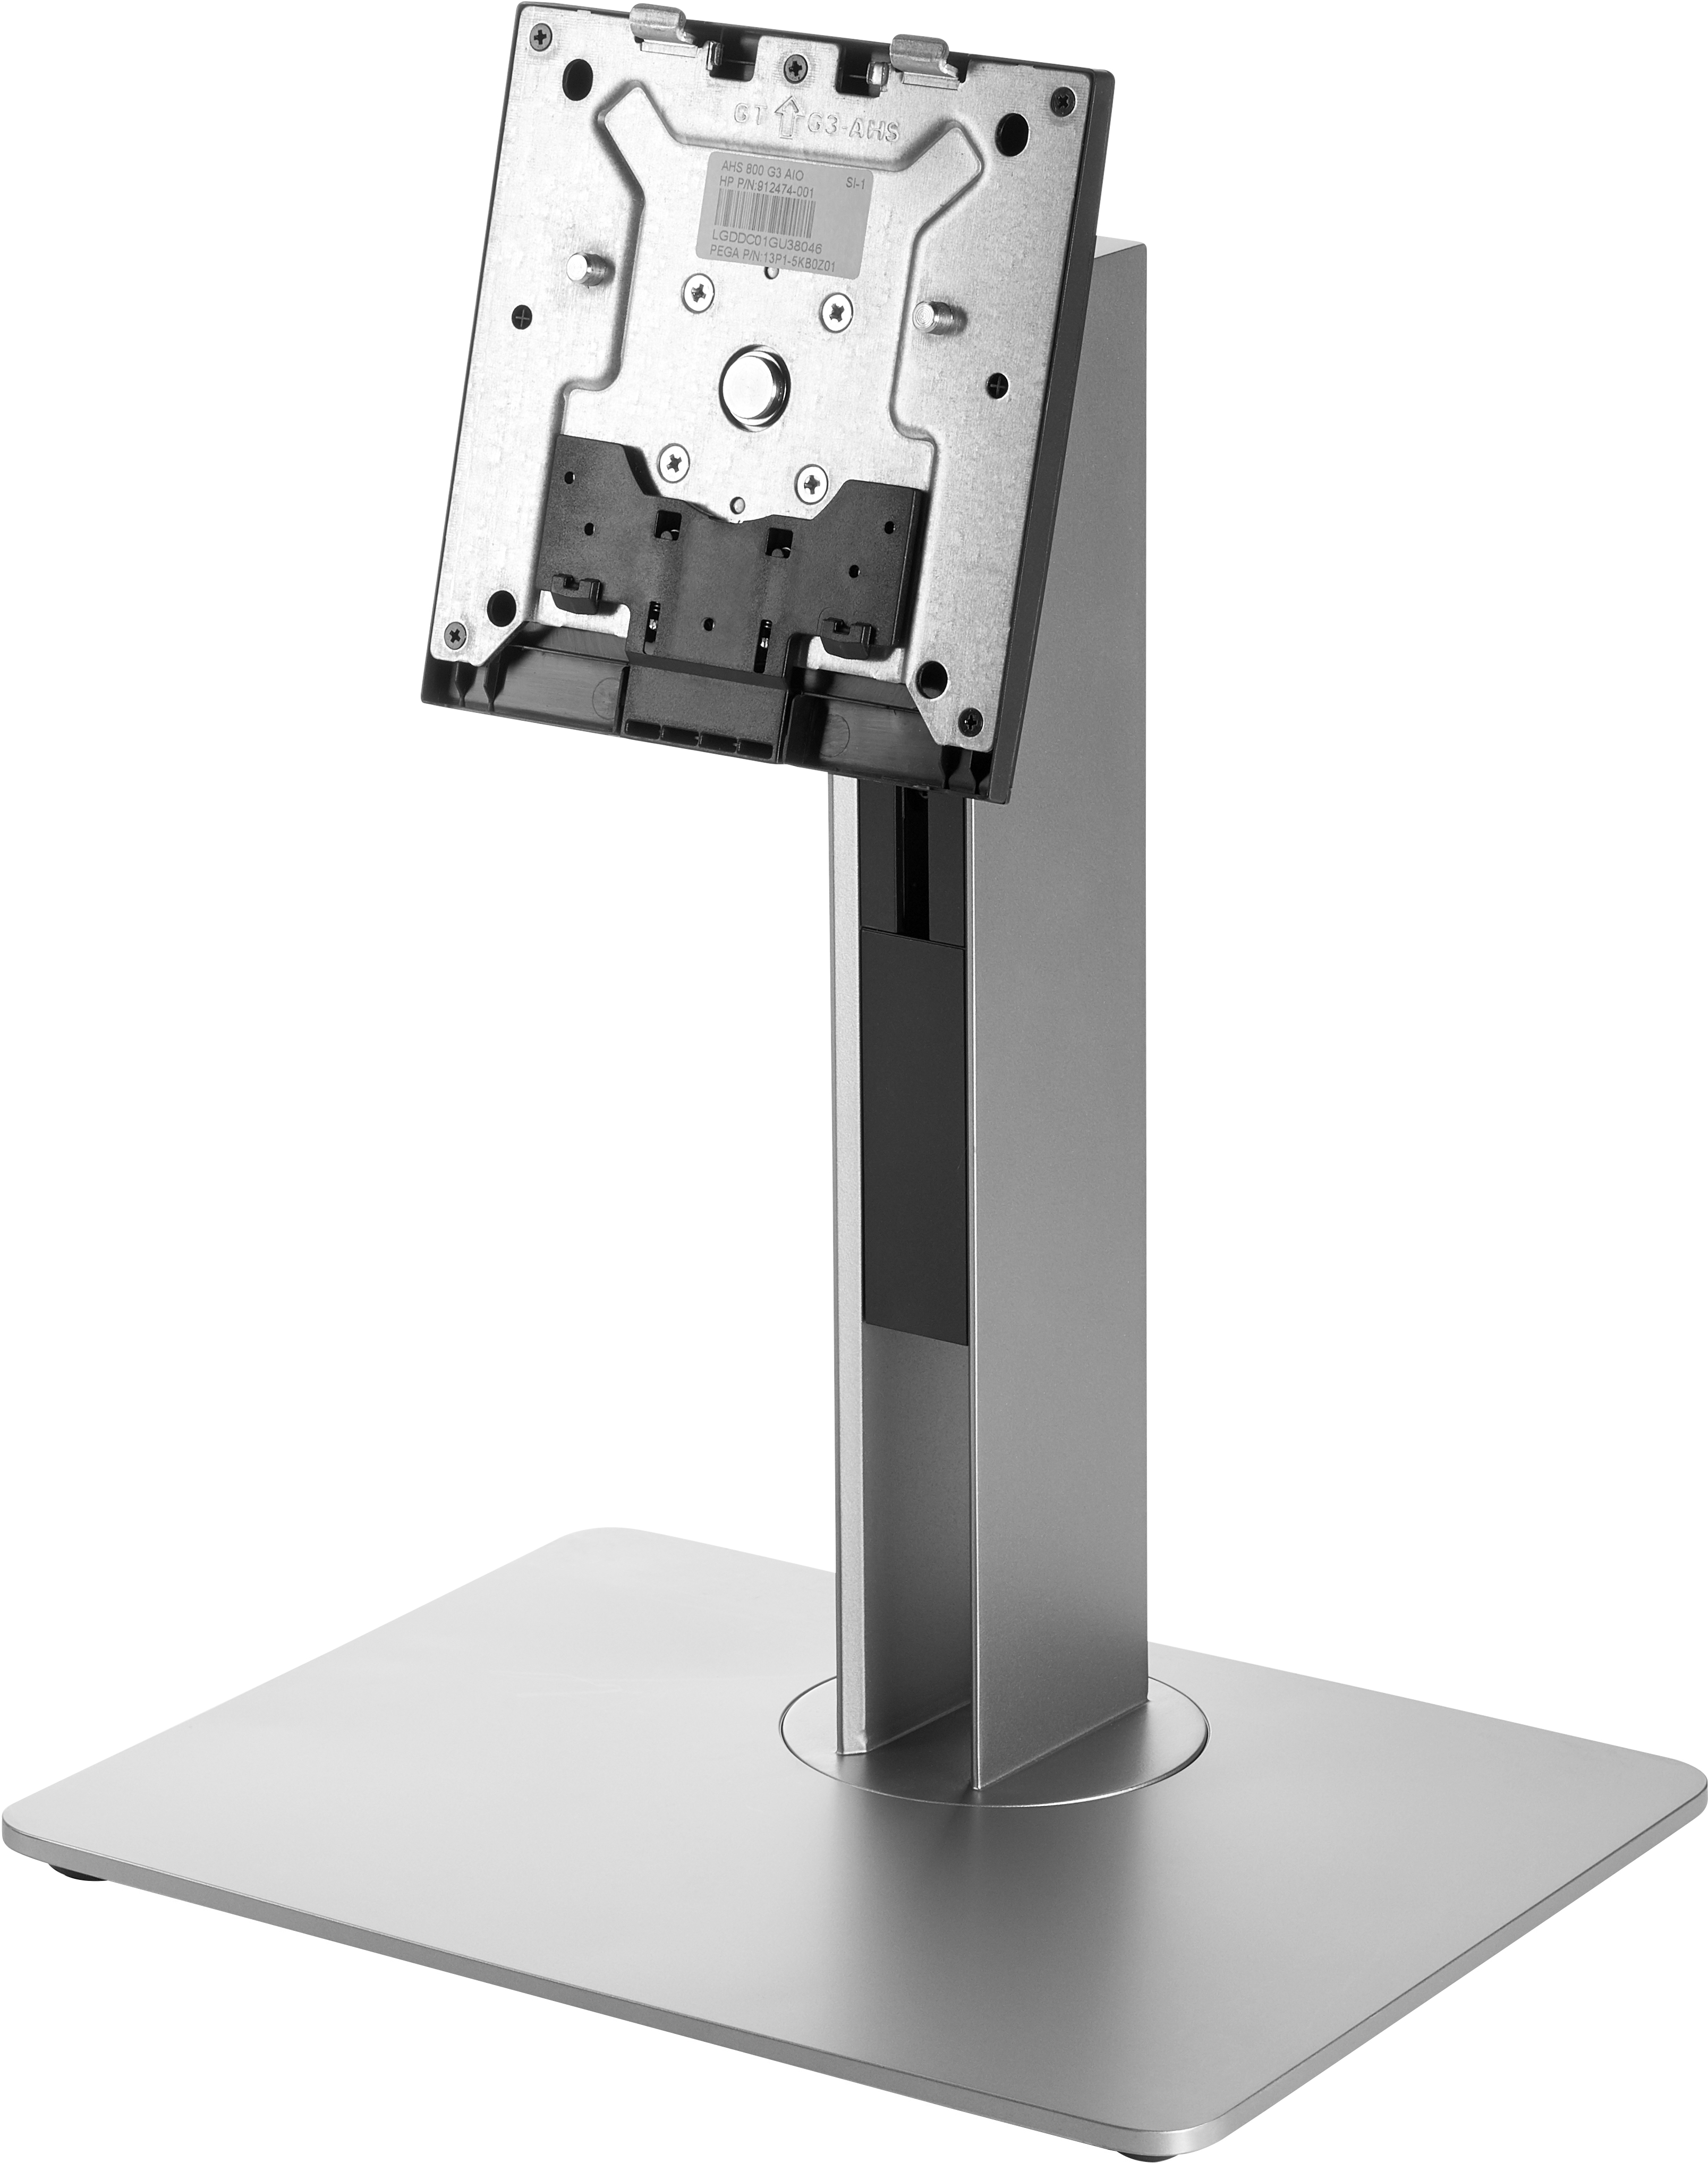 Hp 800g3 Aio Adjustable Height Stand Z9h66aa - WC01